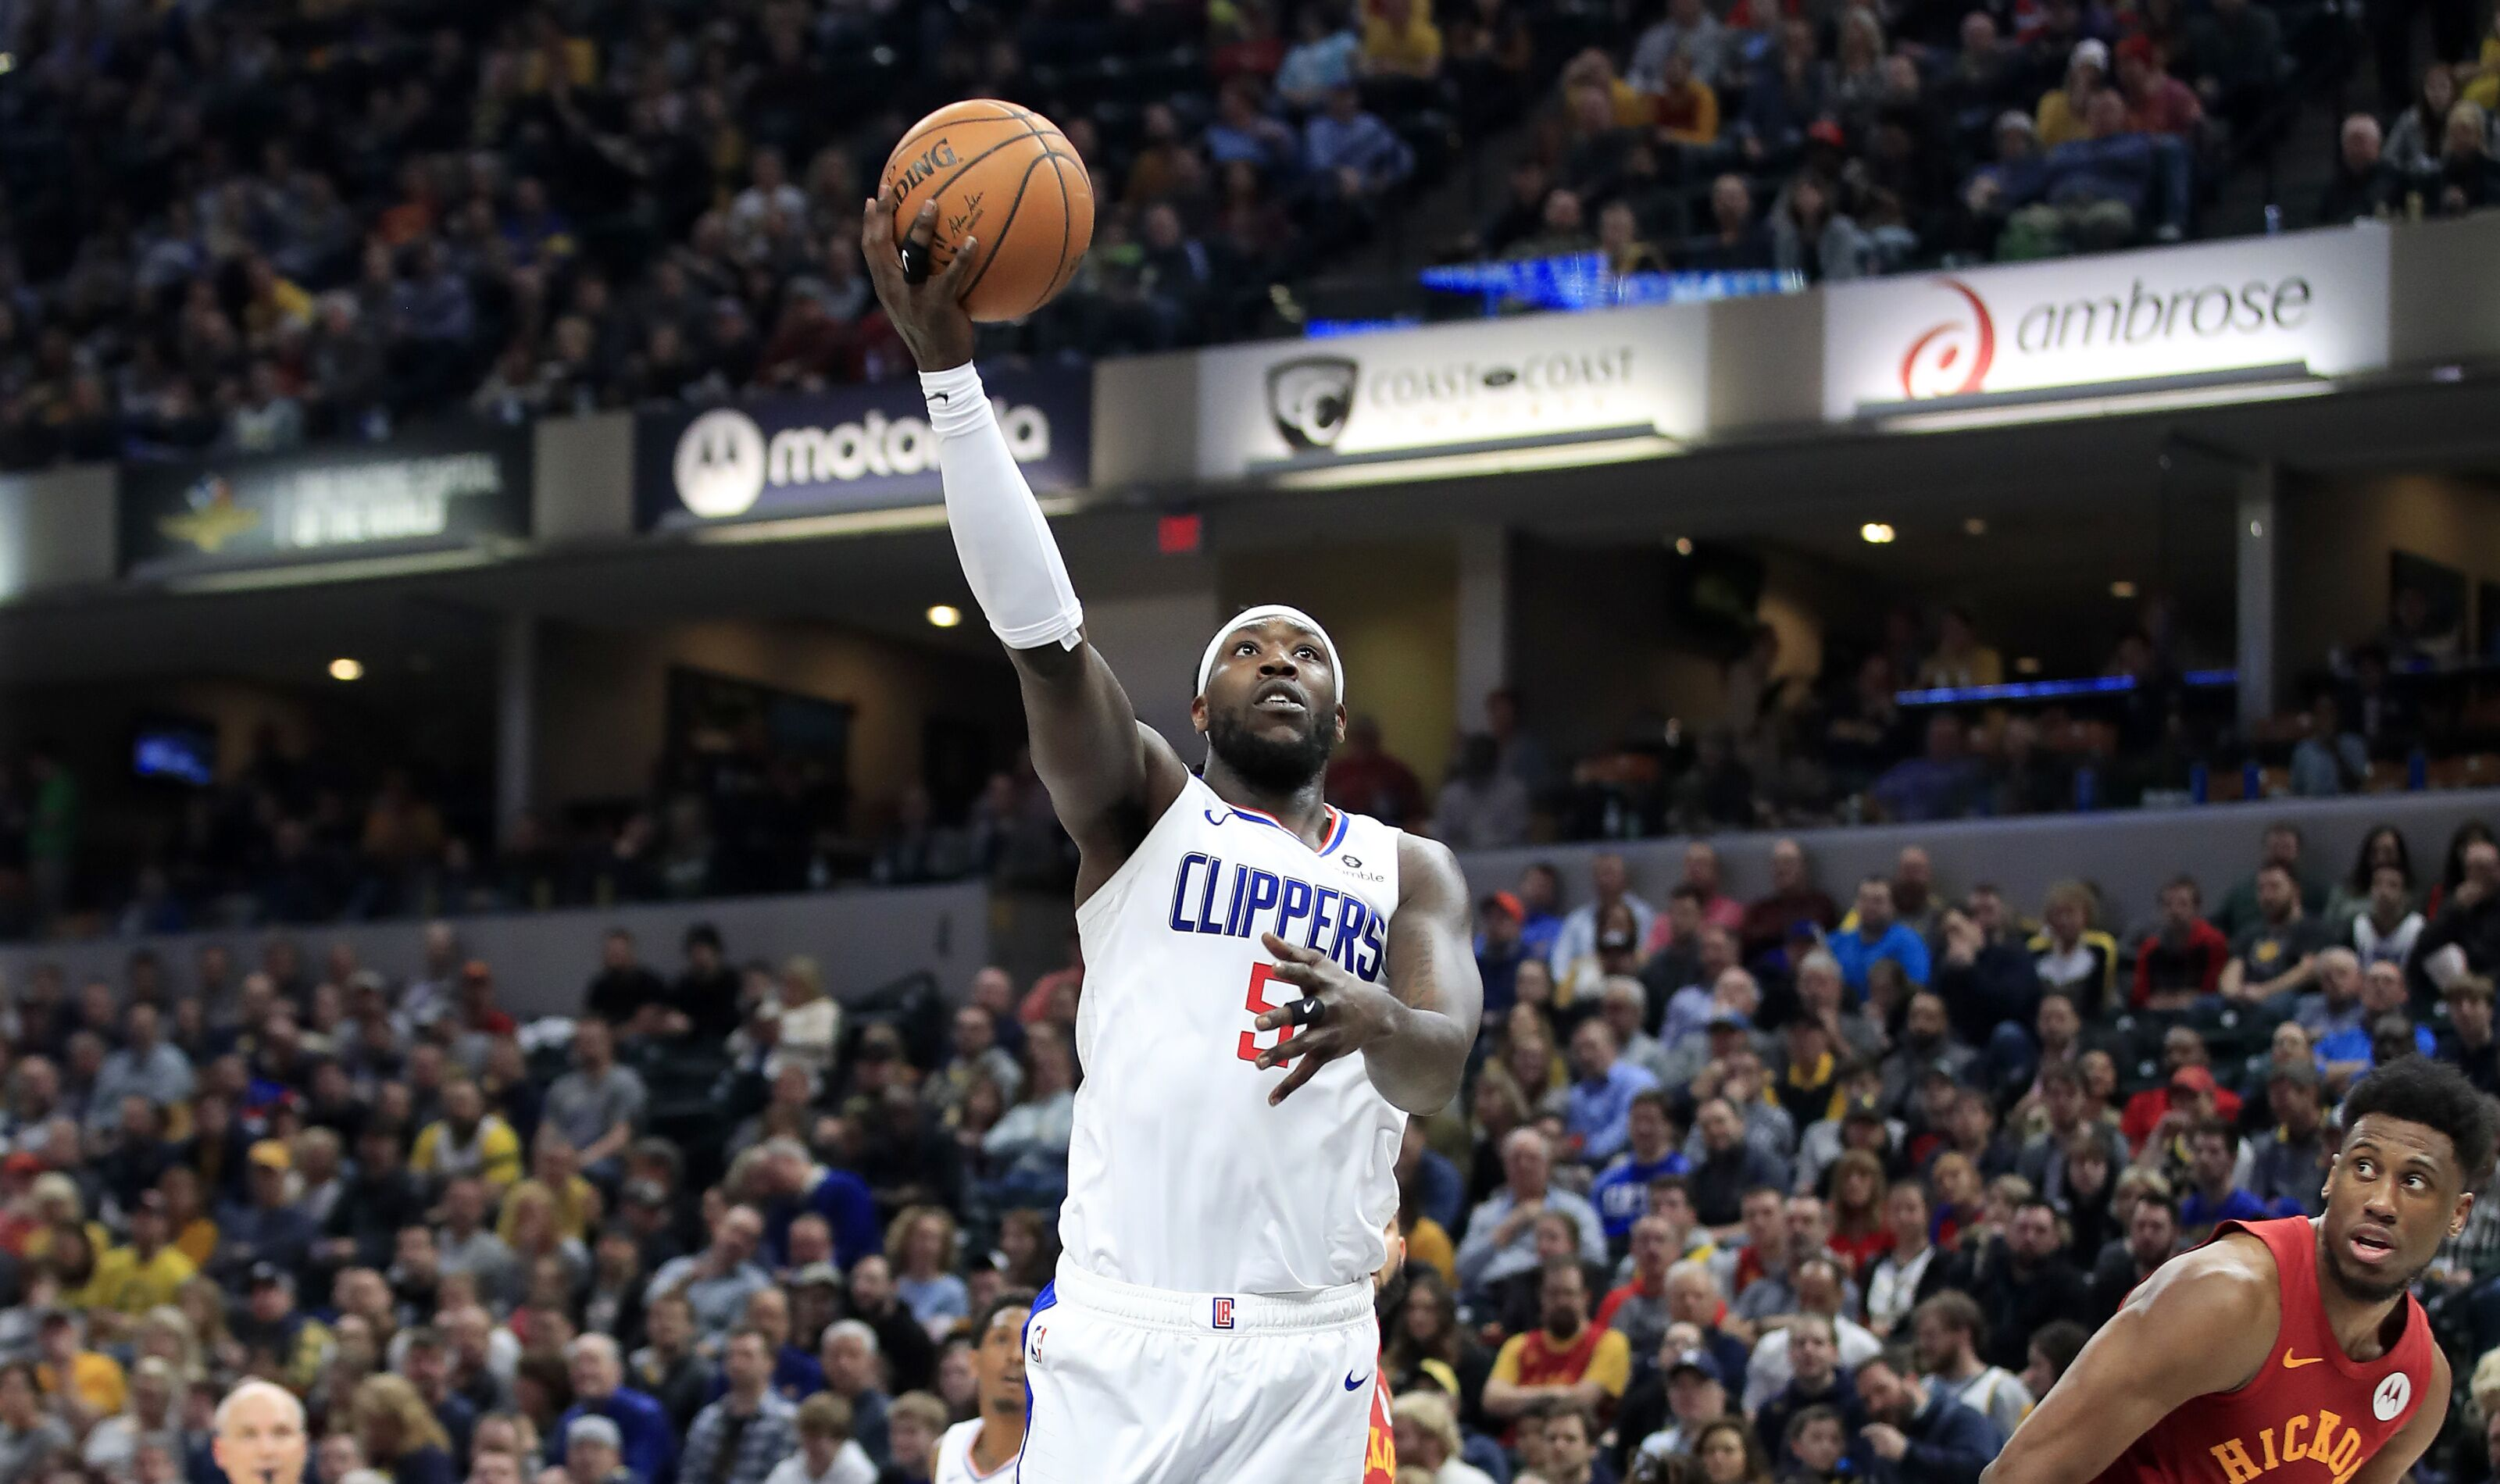 Los Angeles Clippers: Montrezl Harrell is the third-most important player